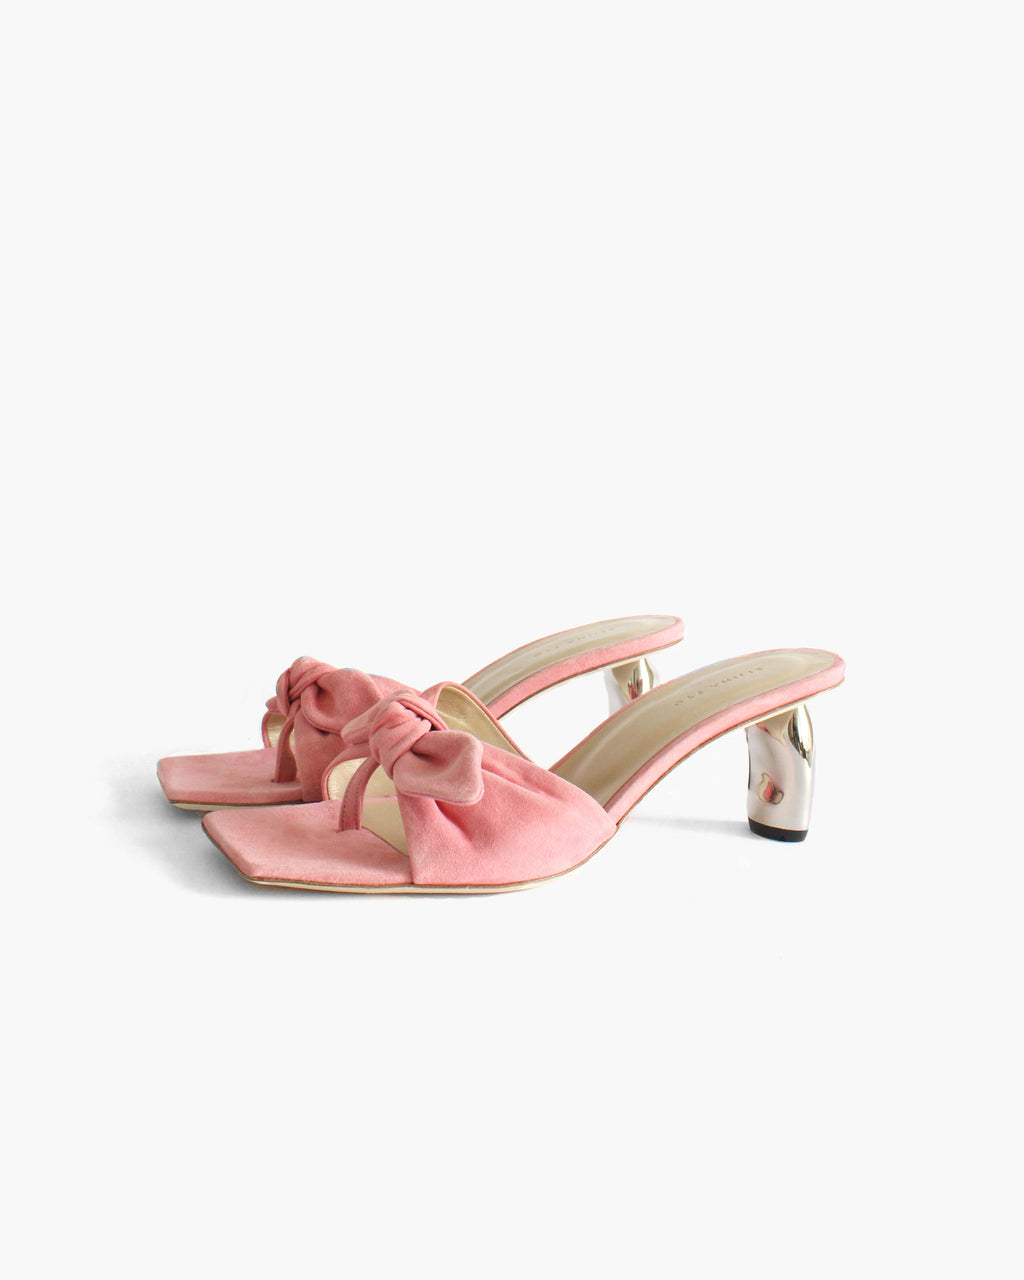 Lottie Ribbon Sandals Suede Pink with Tamarind Heels - SPECIAL PRICE